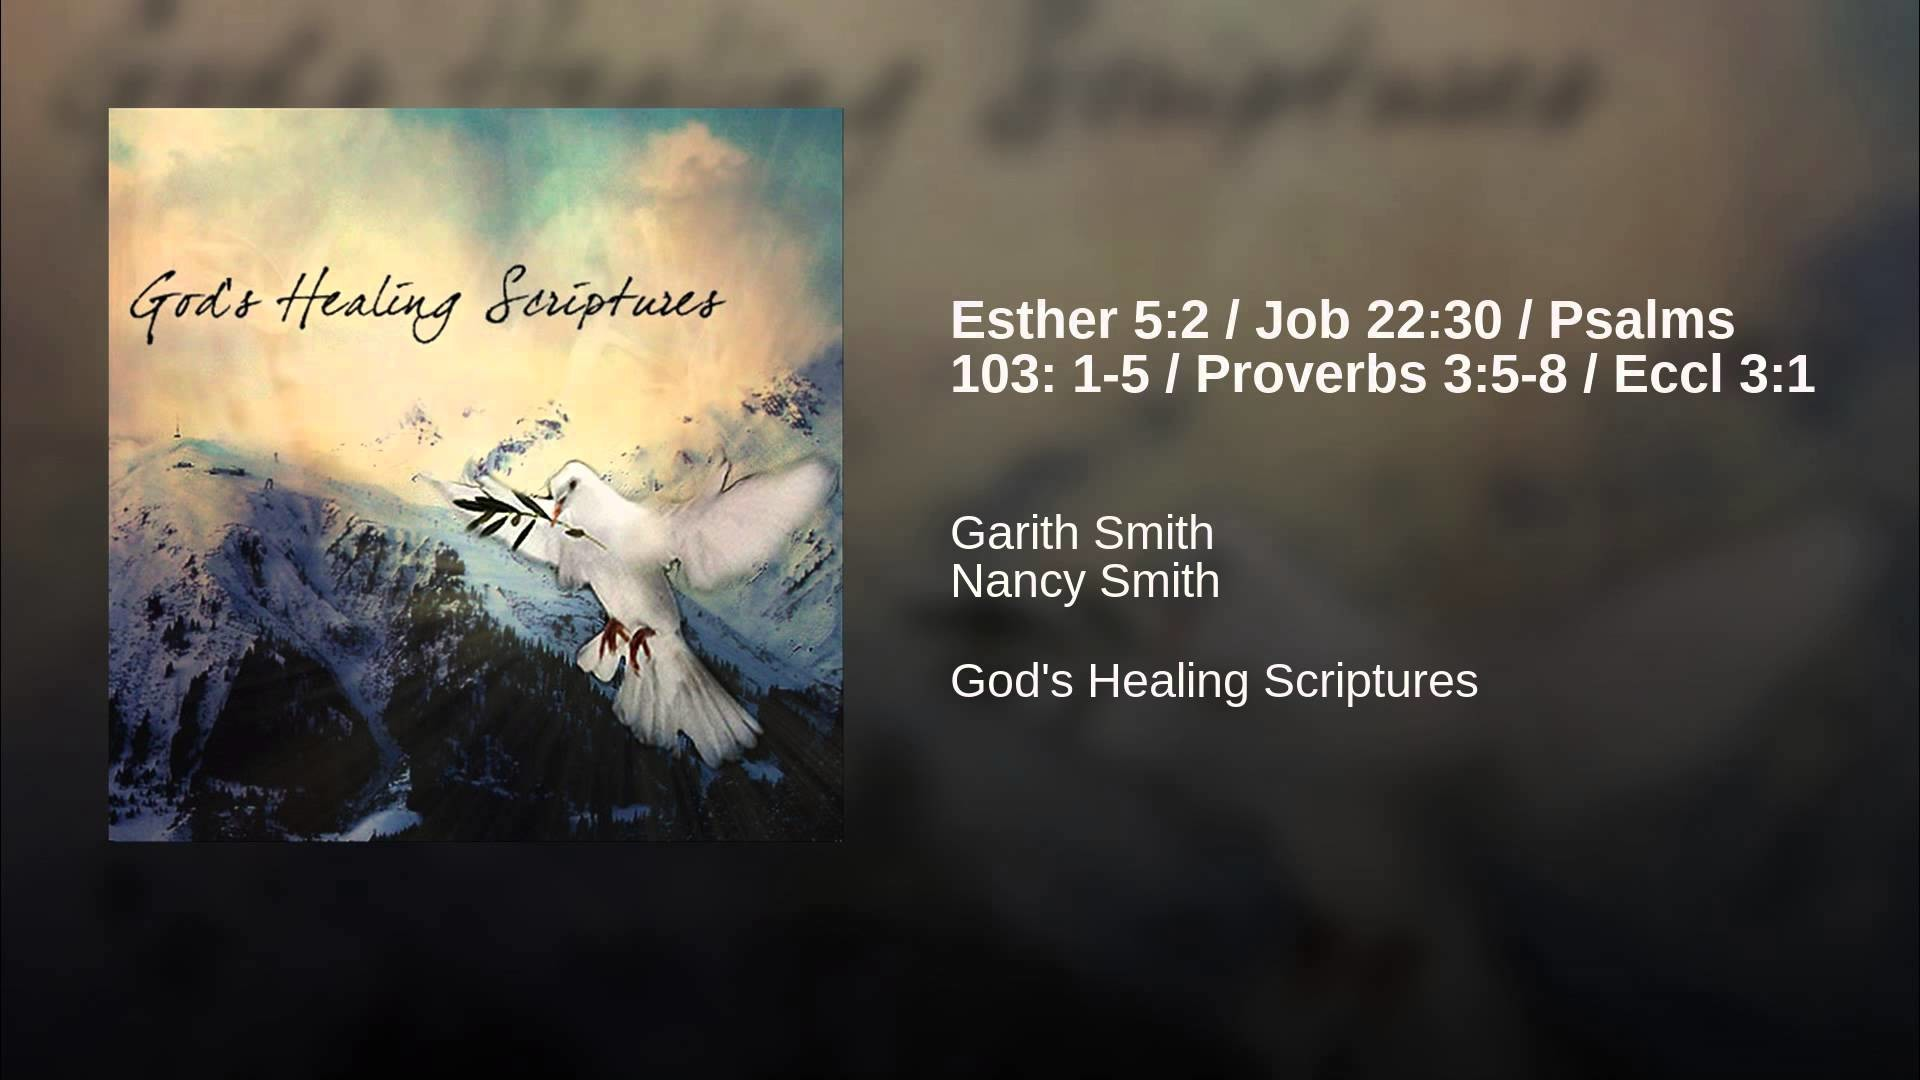 1920x1080 Esther 5:2 / Job 22:30 / Psalms 103: 1-5 / Proverbs 3:5-8 / Eccl 3:1